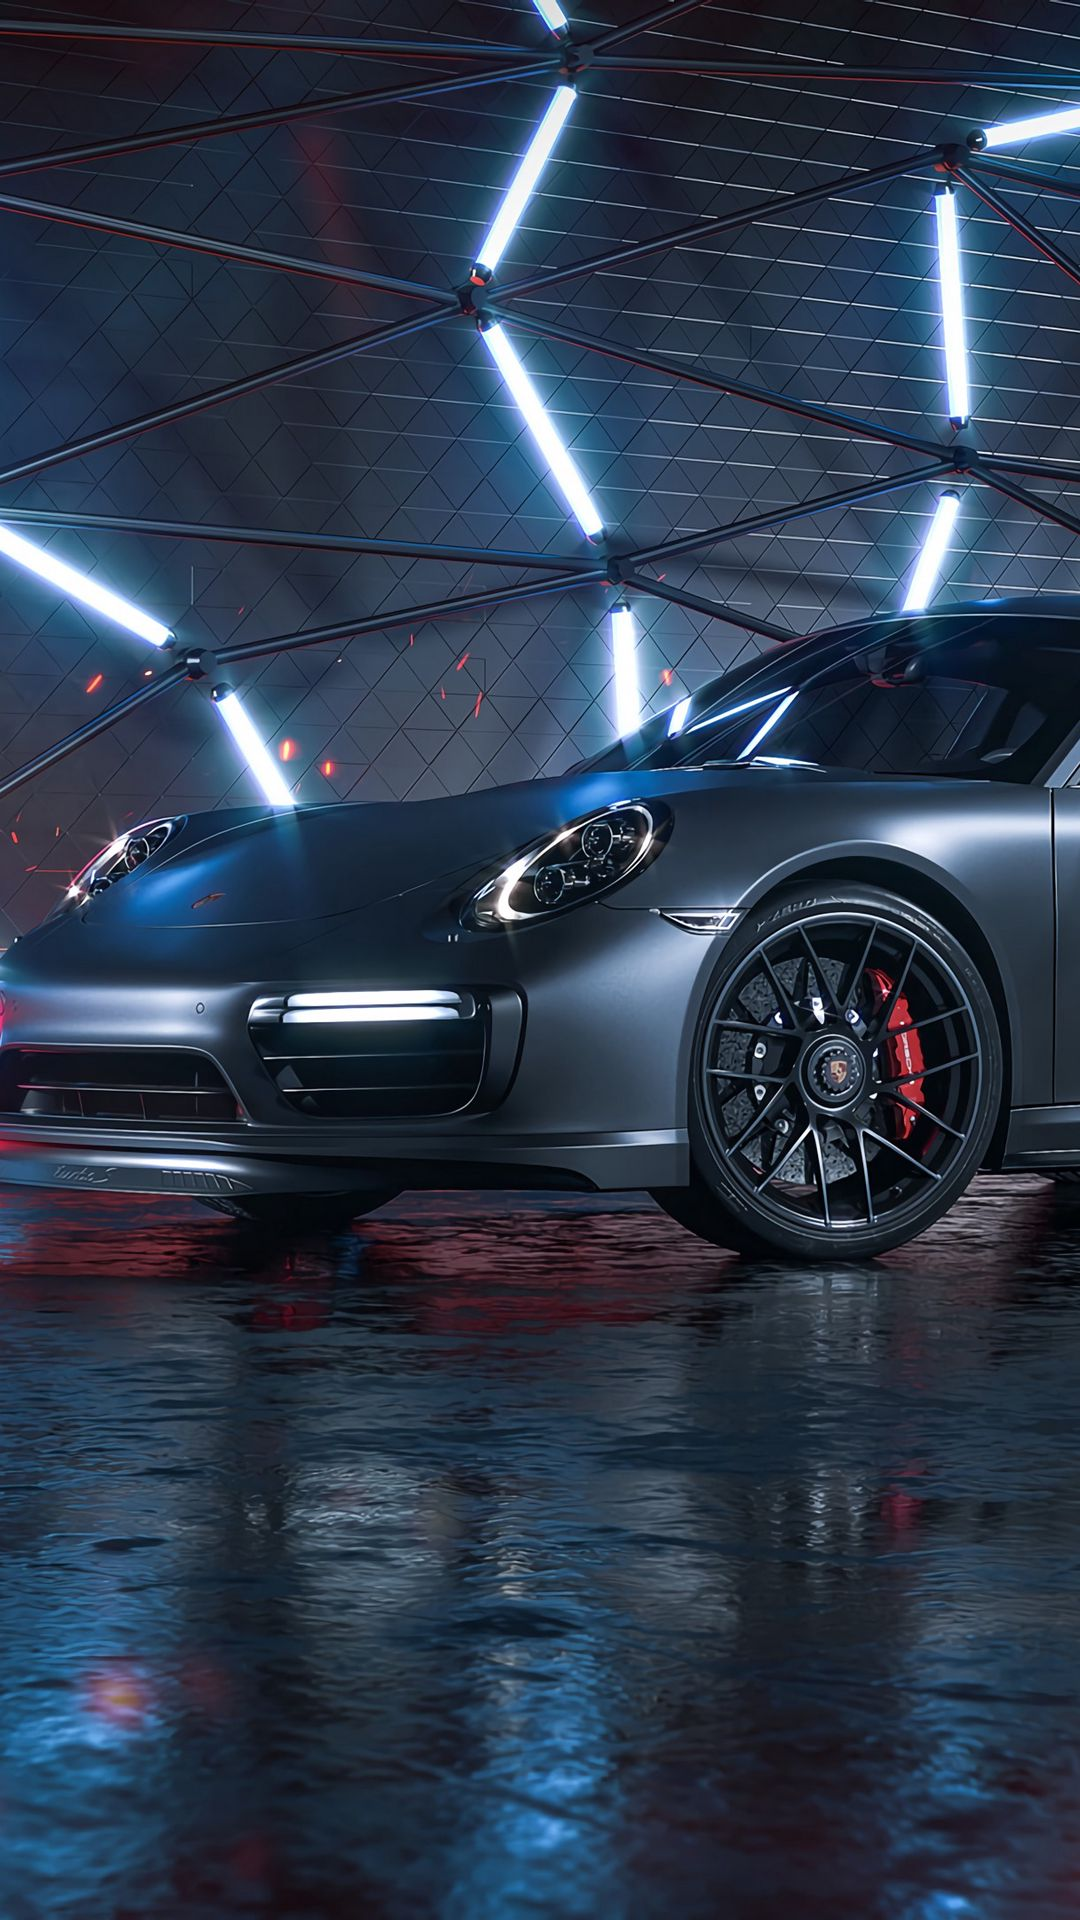 Porsche Sportscar Wallpapers Free Download for Mobile Background